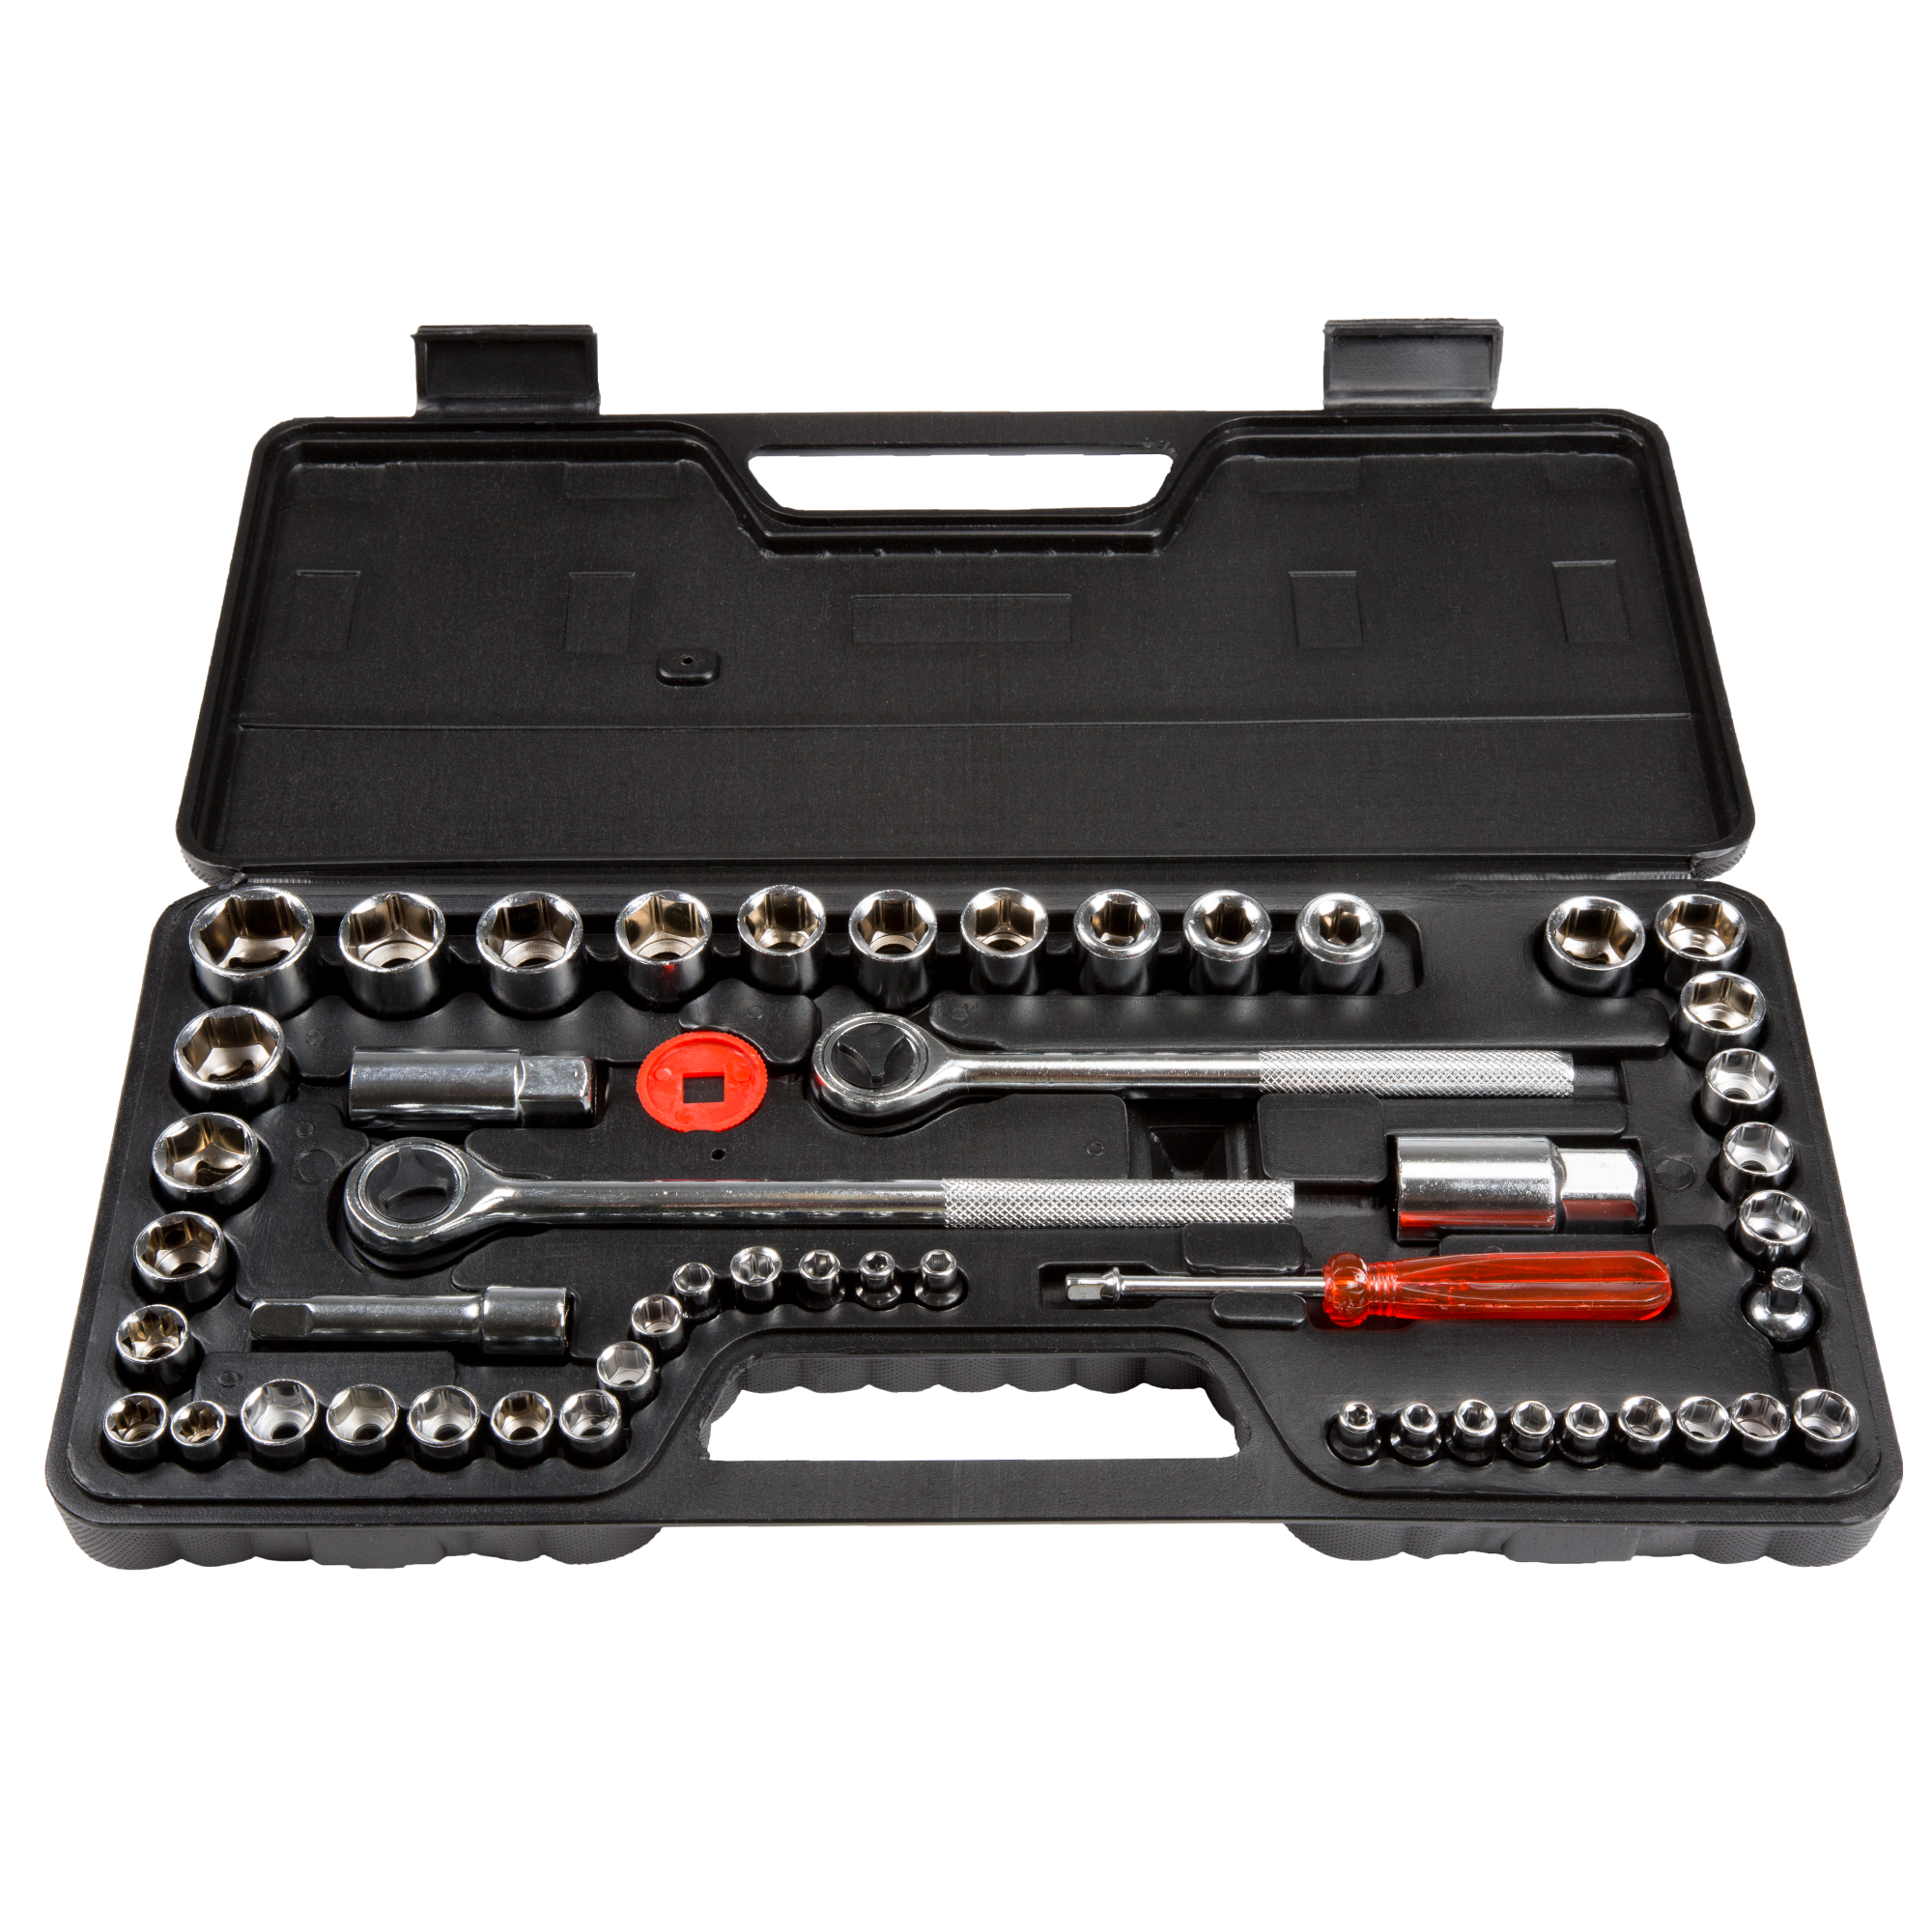 52 Piece 1/4, 3/8 and 1/2 Drive Socket Set SAE and Metric by Stalwart